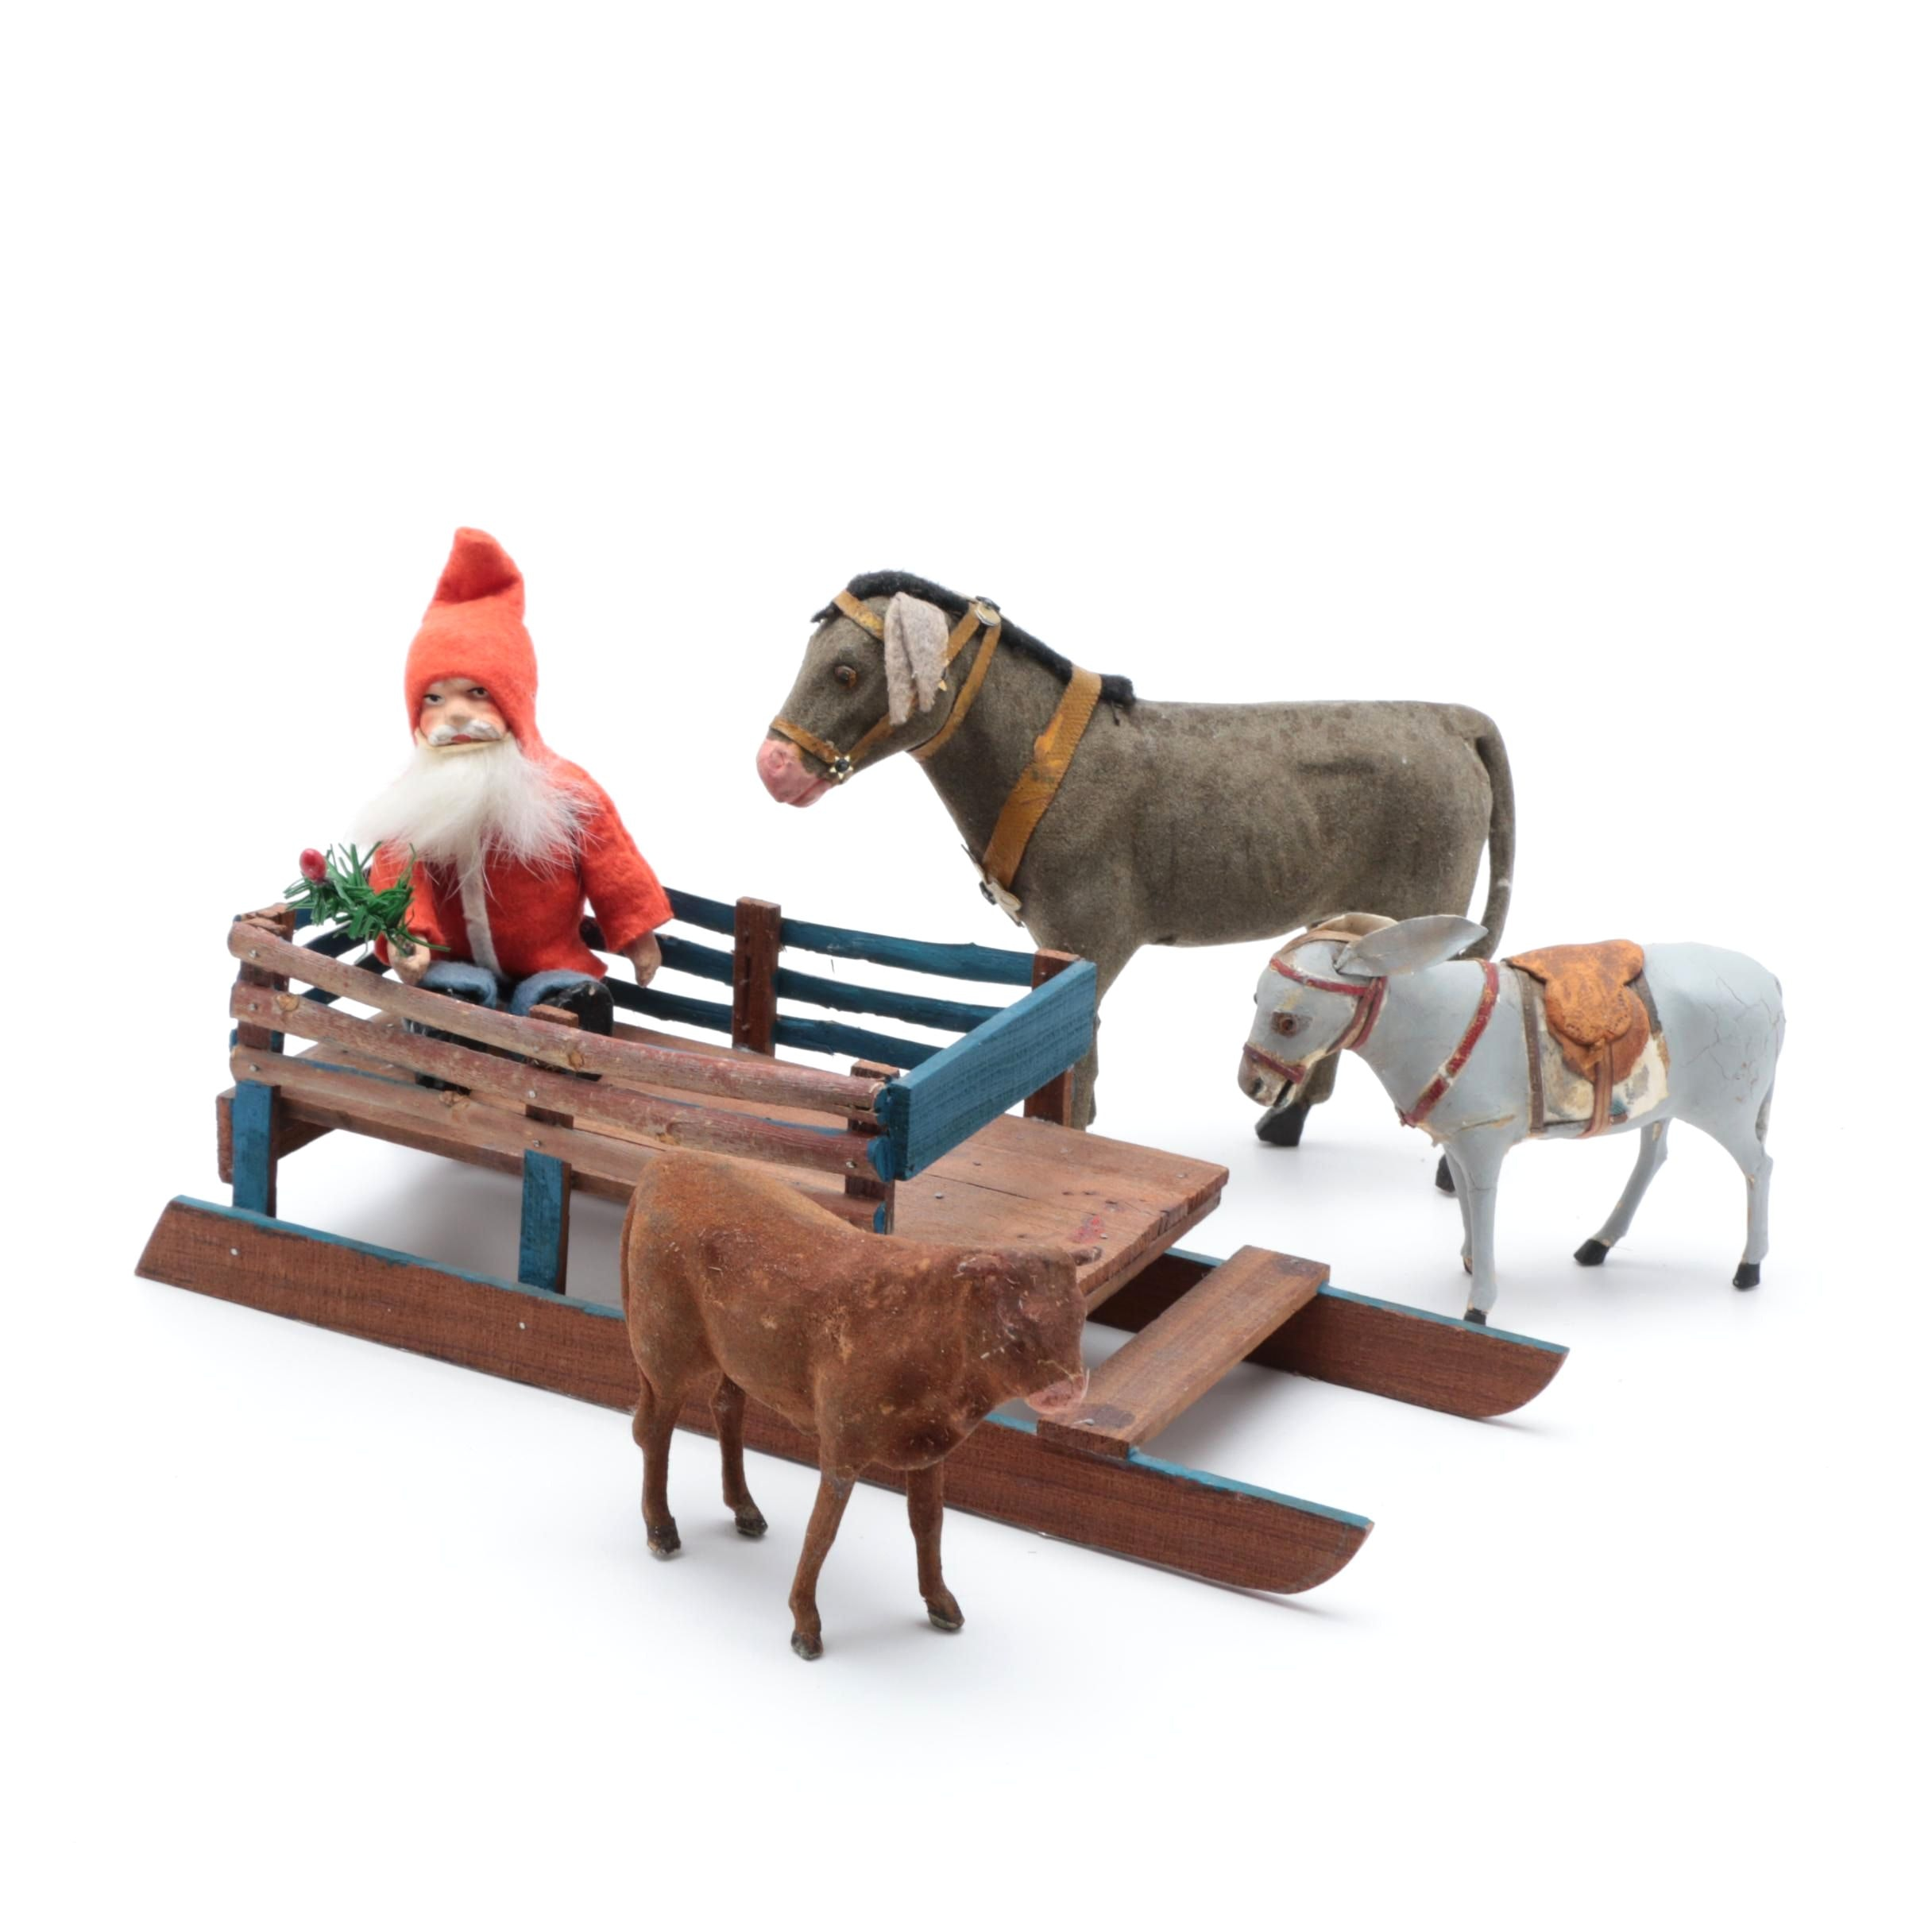 Antique Papier-Mâché Creche Animals and Belsnickle in a Wooden Sled